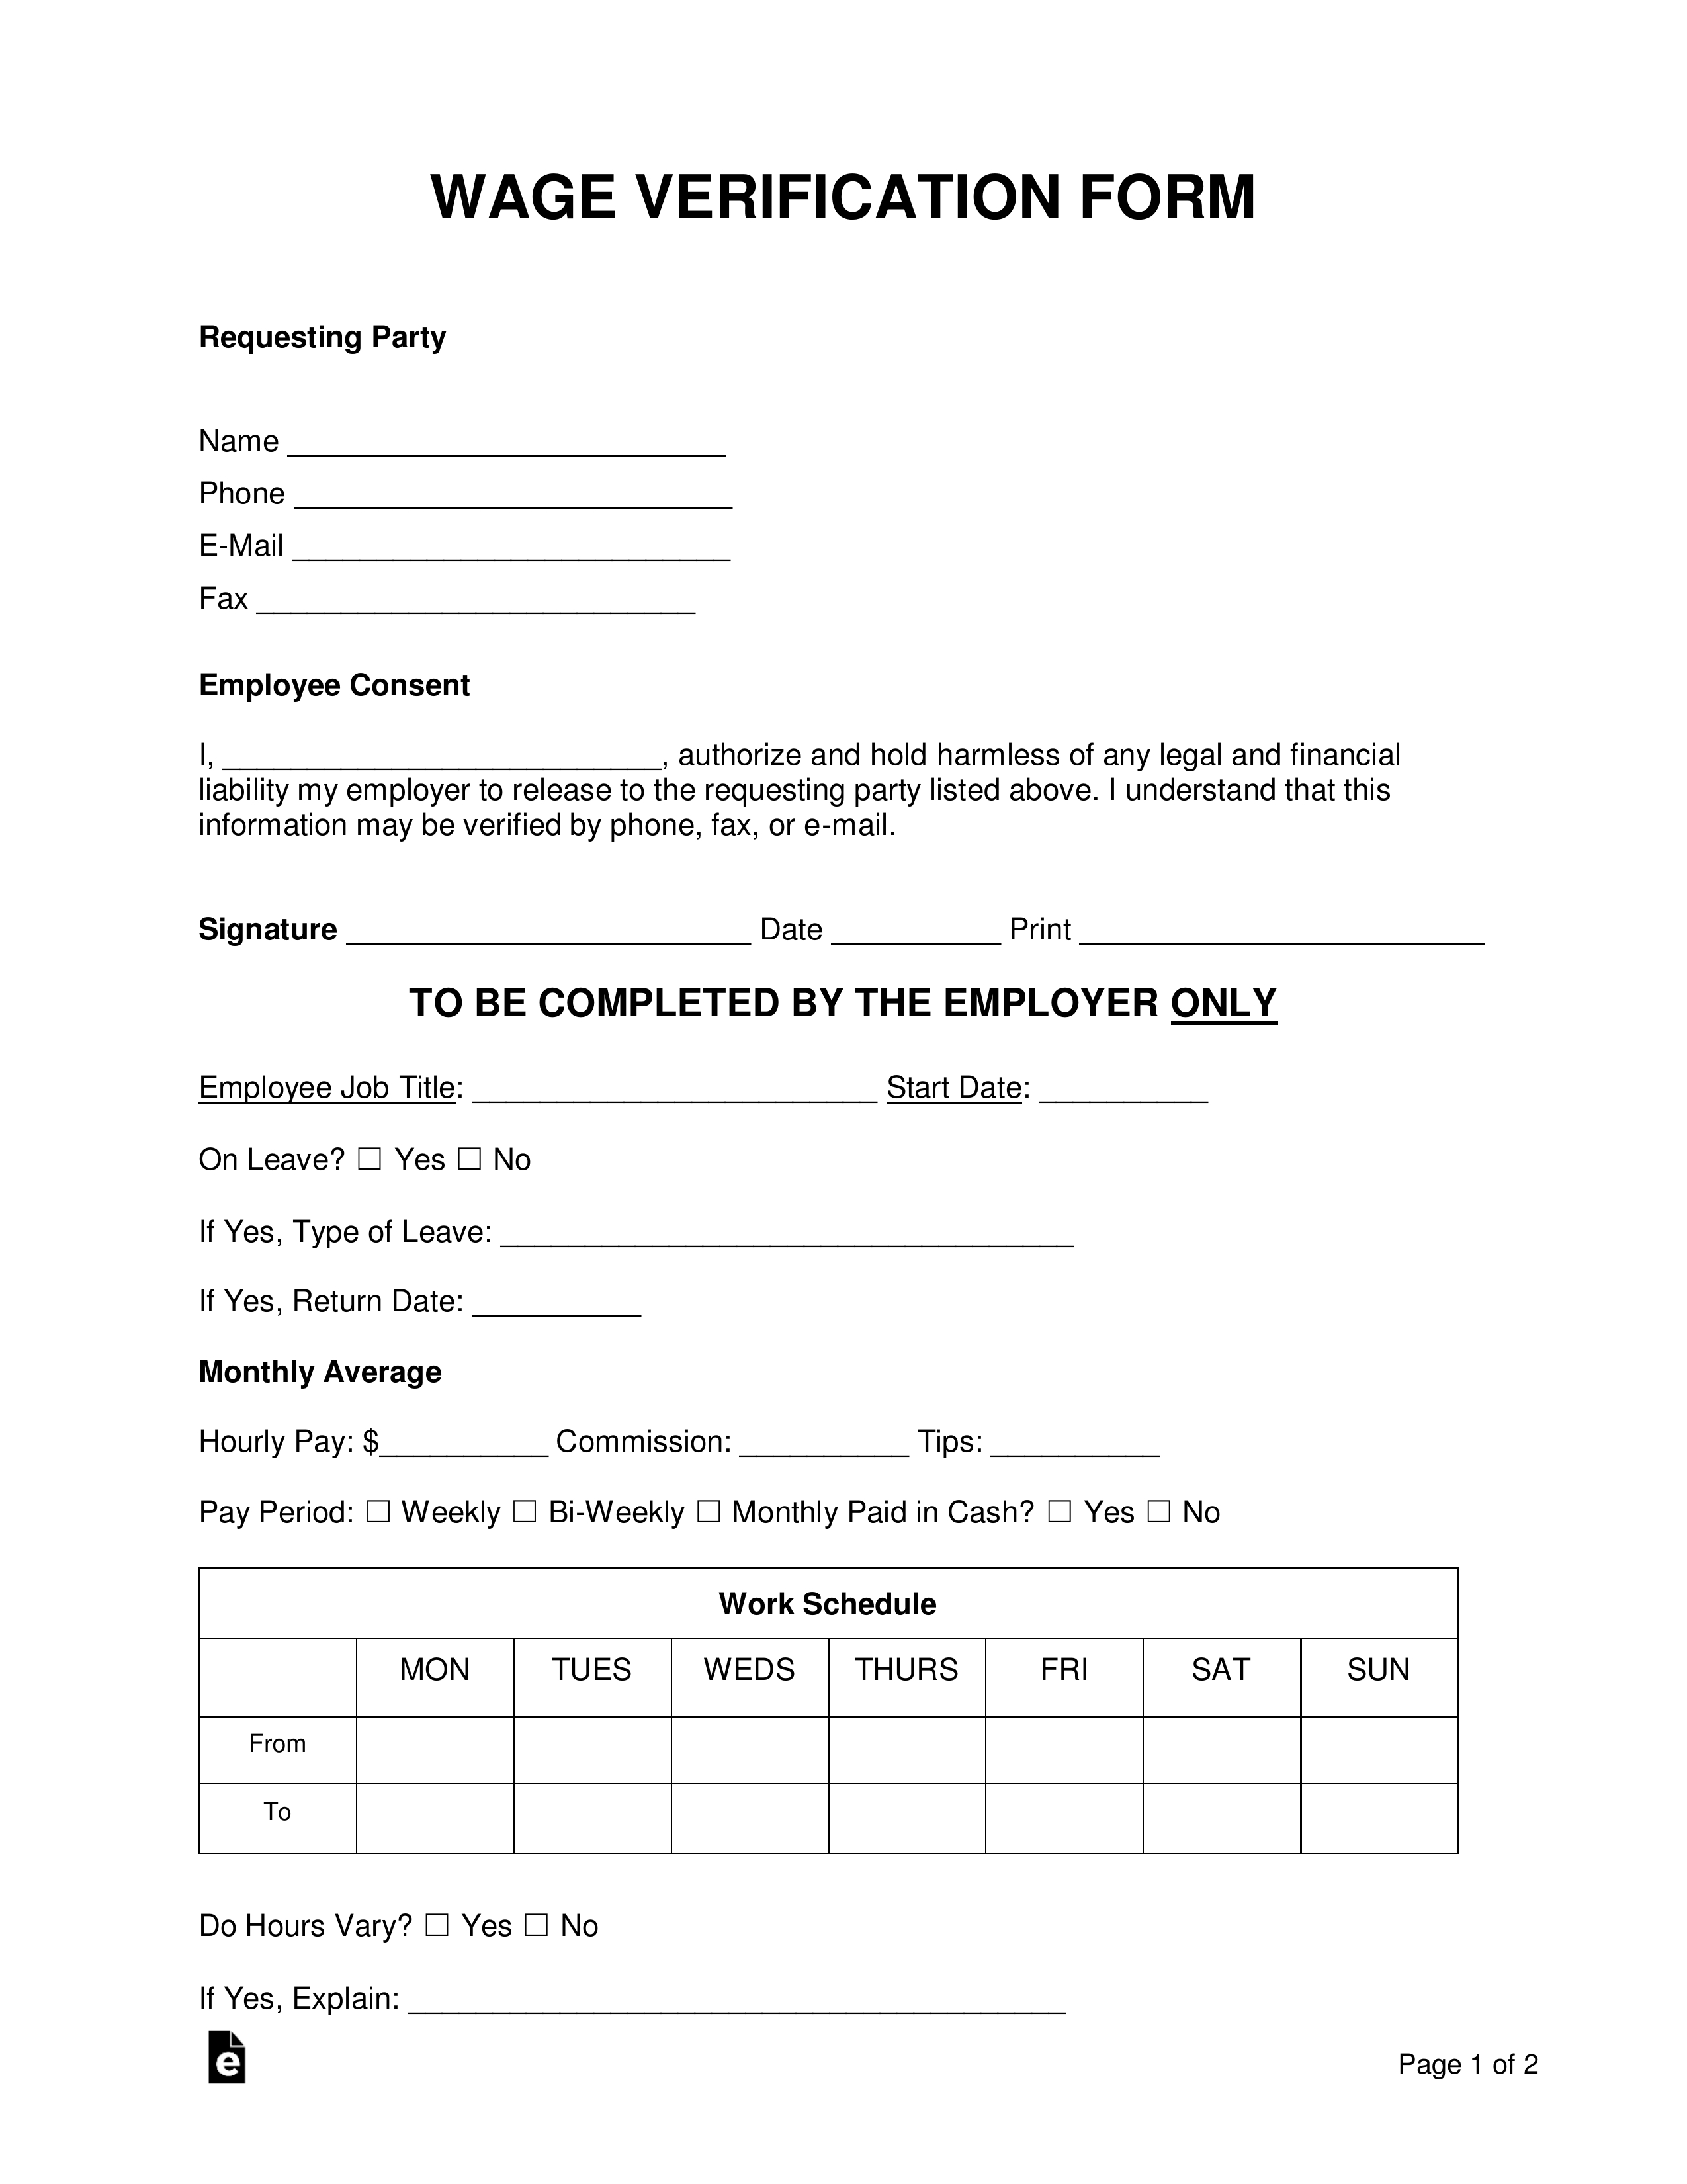 Free Wage Verification Form - Pdf | Word | Eforms – Free